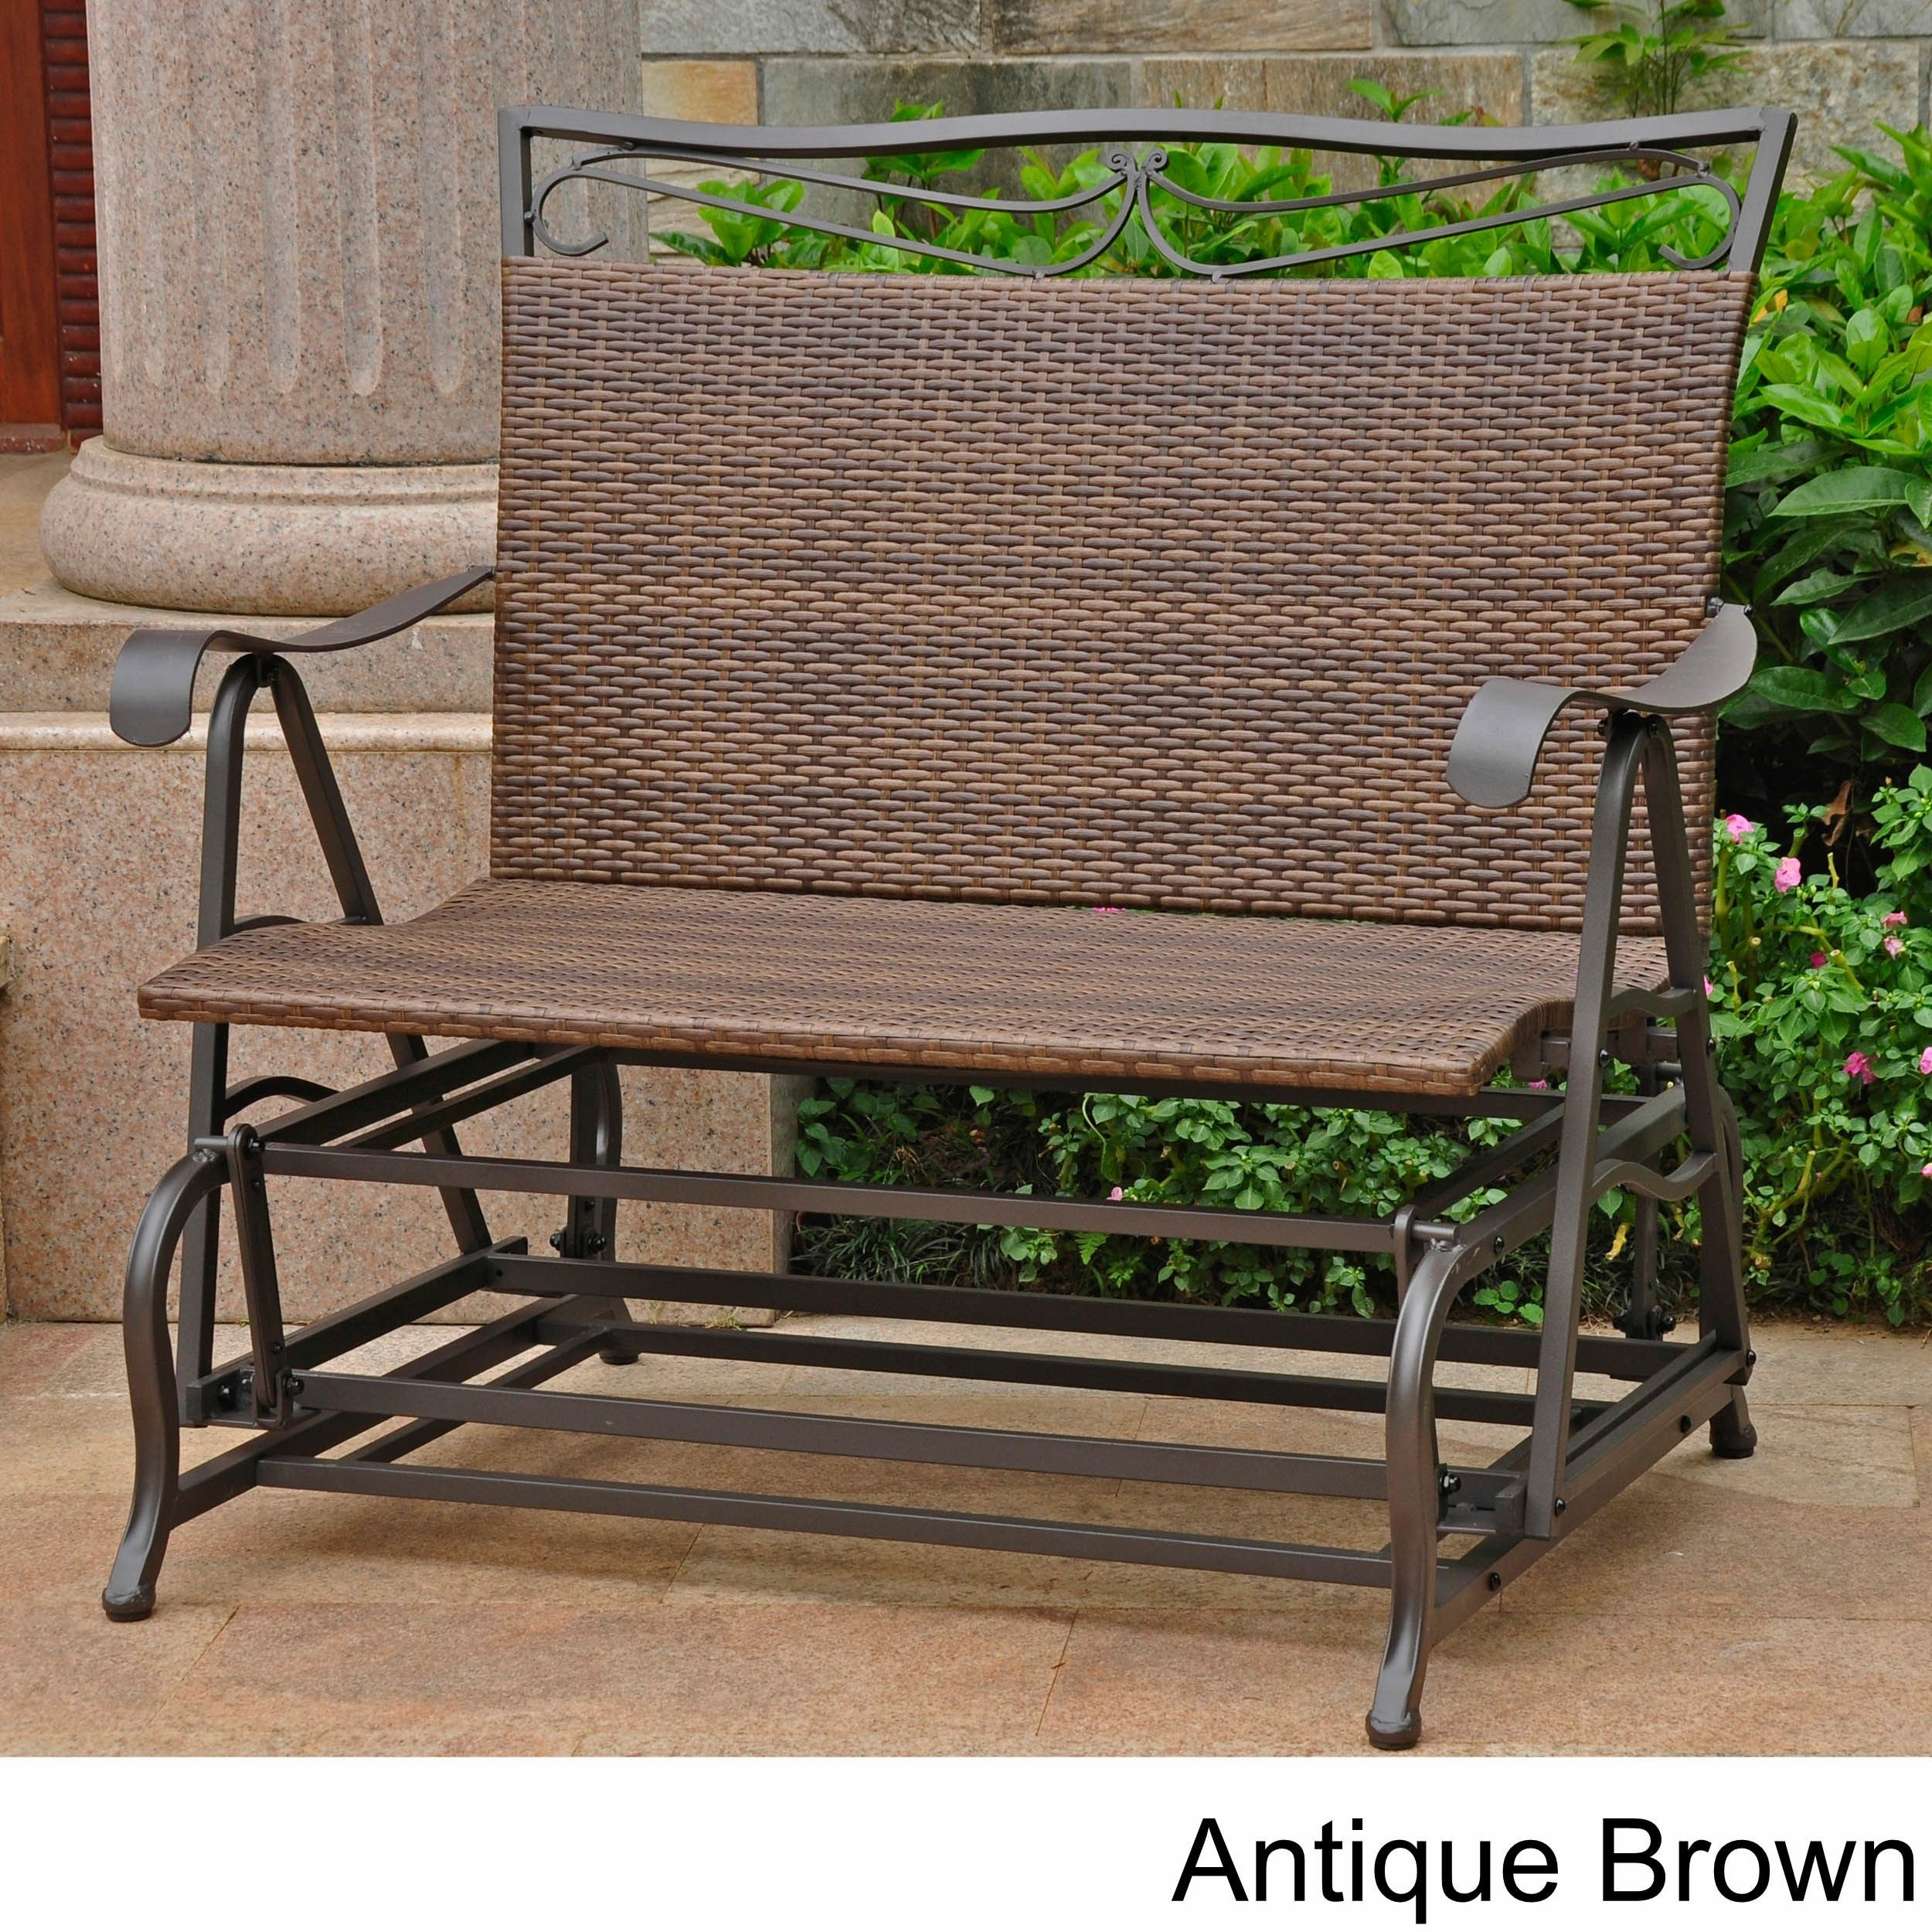 International Caravan Valencia Resin Wicker/ Steel Frame Intended For Iron Double Patio Glider Benches (Image 16 of 25)